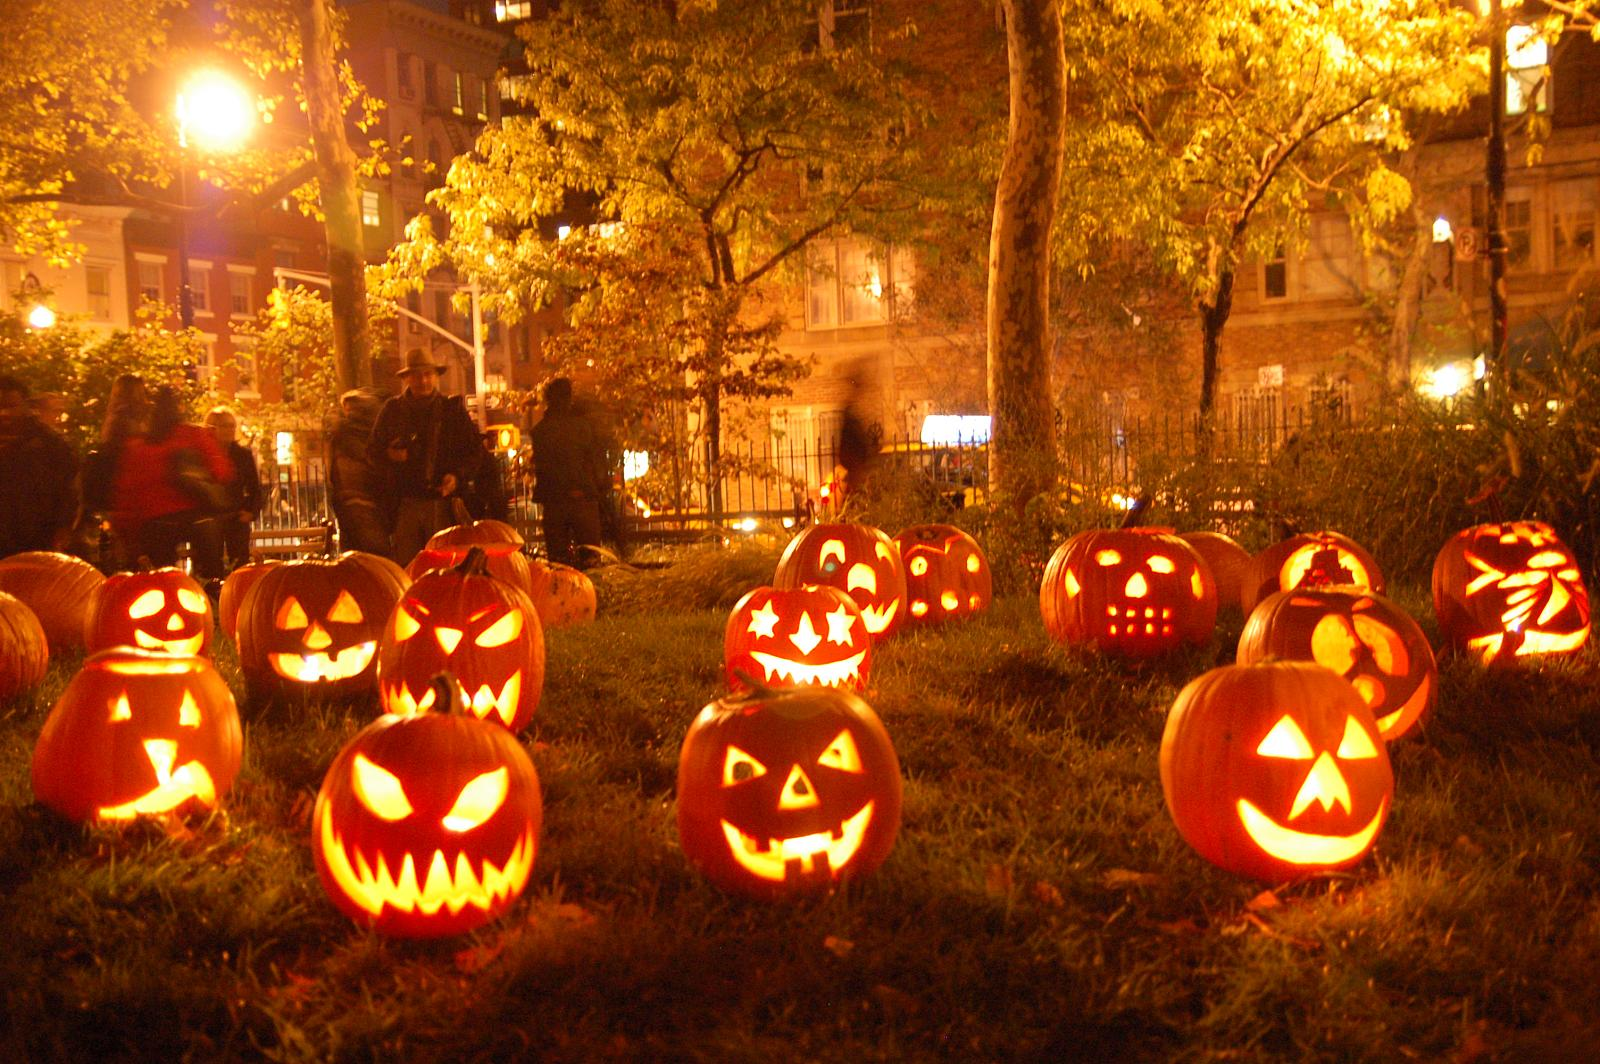 Nyc School Calendar Georgia Institute Of Audio Research Nyc Study Audio Engineering Halloween Fun Facts